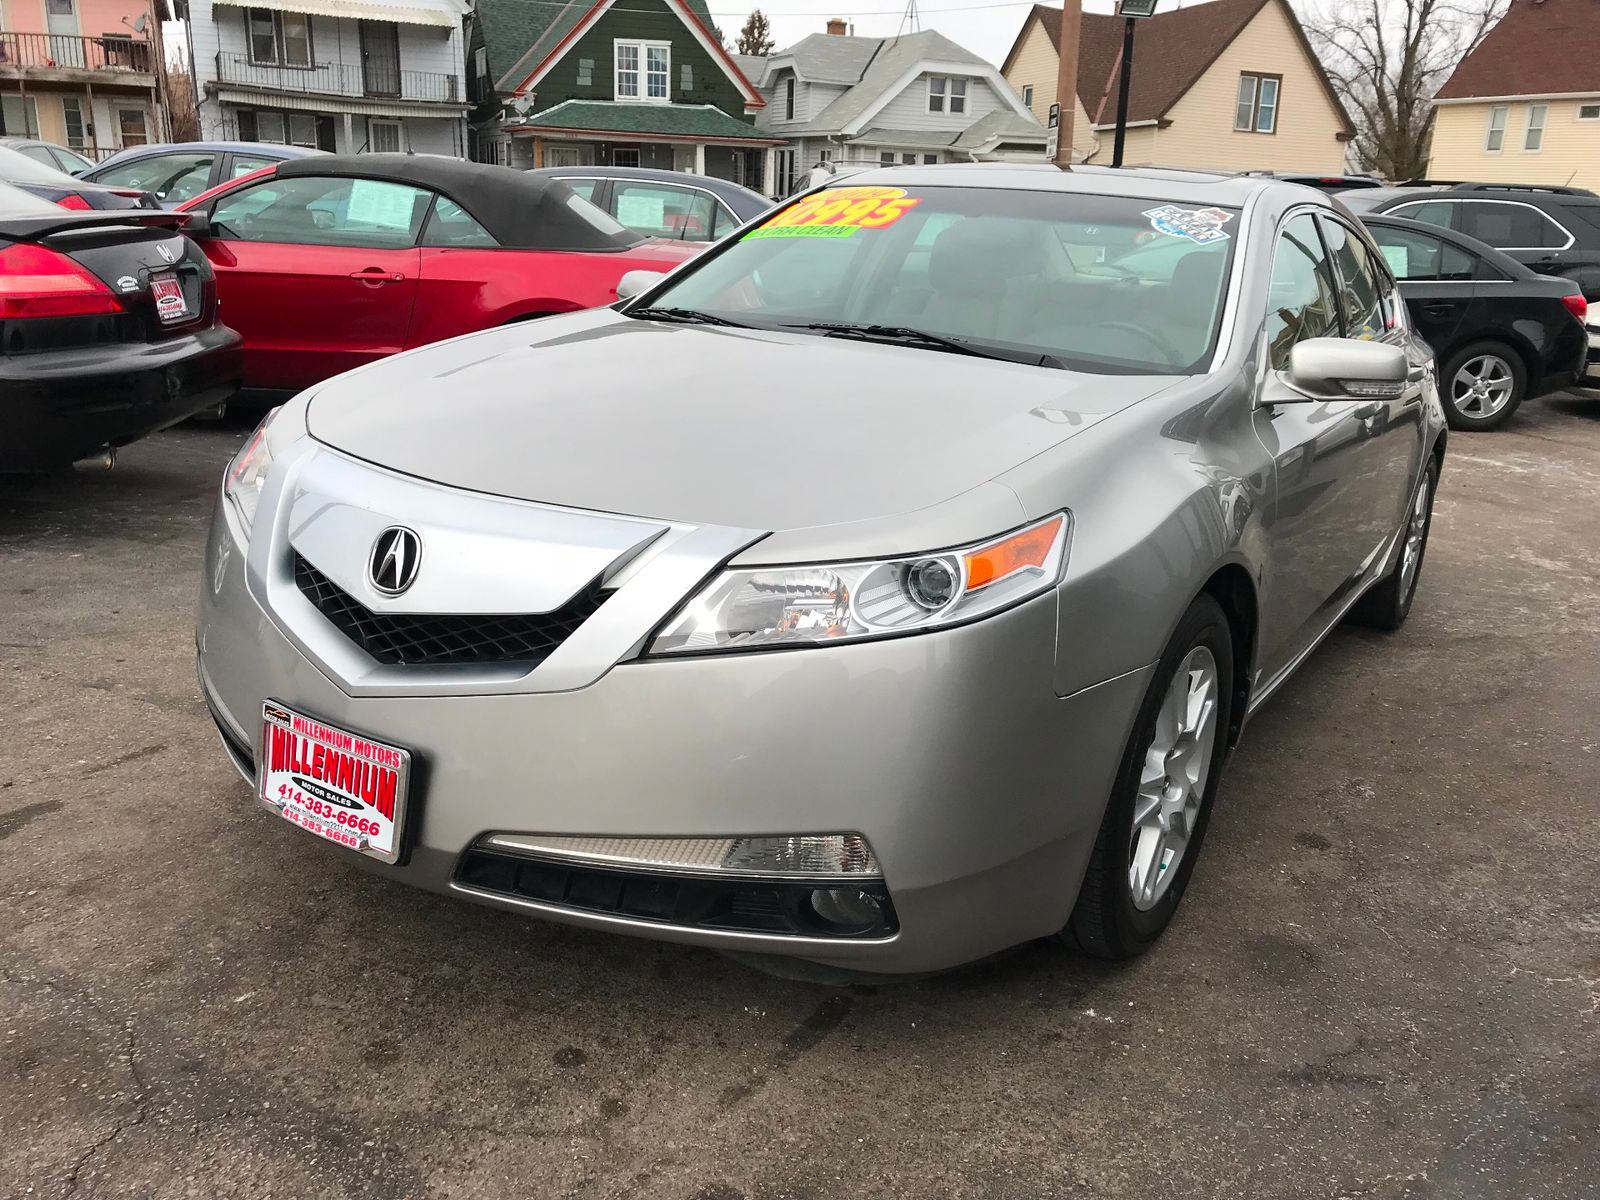 sh tl hpt cars tech indiana awd member obo for aspec forums miles w acura sale closed indianapolis